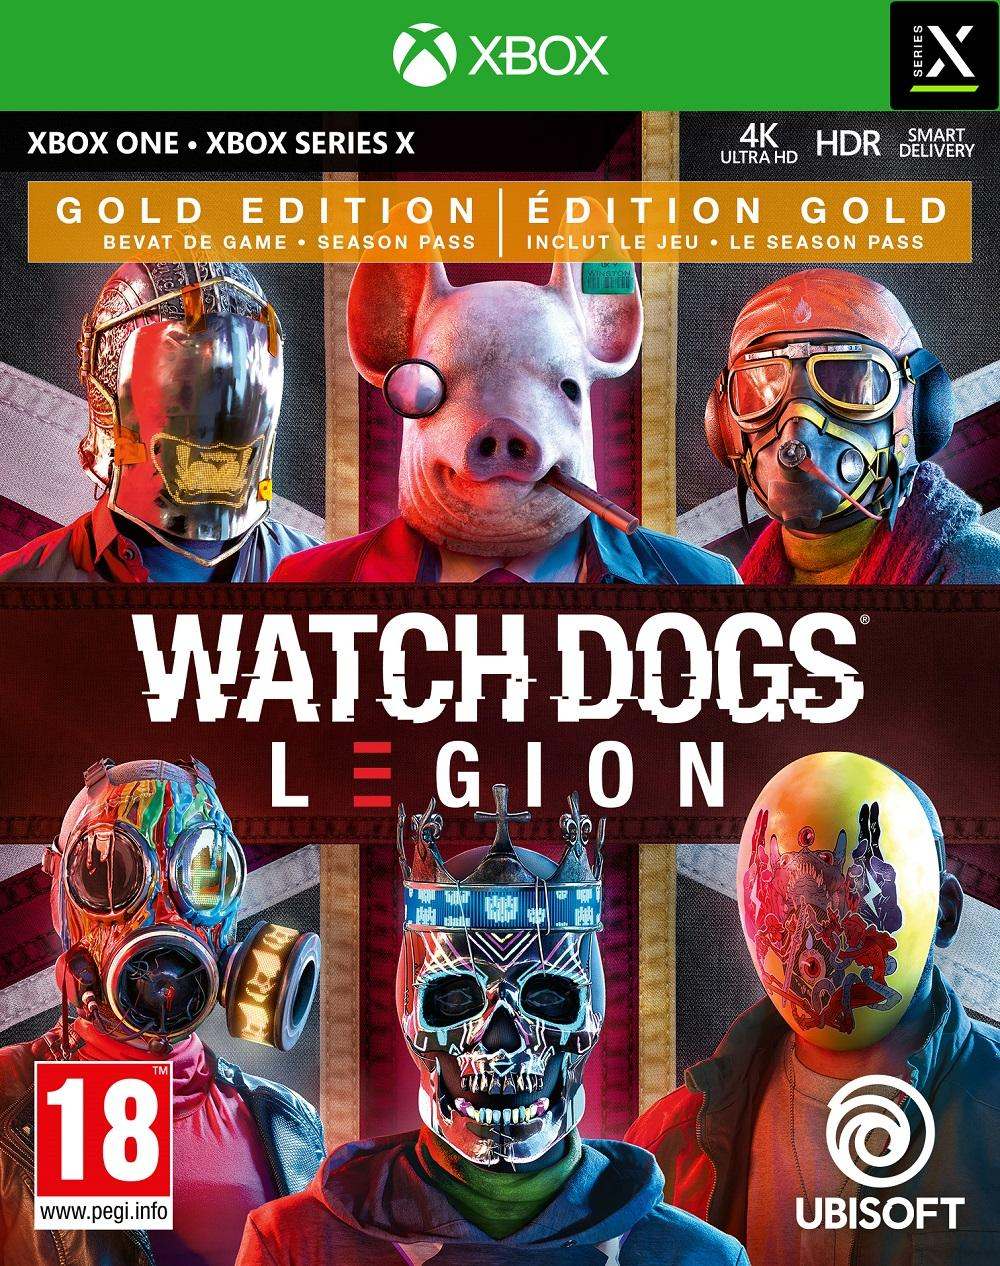 Watch Dogs Legion Gold Edition - XBOX ONE / XBOX SERIES X_1